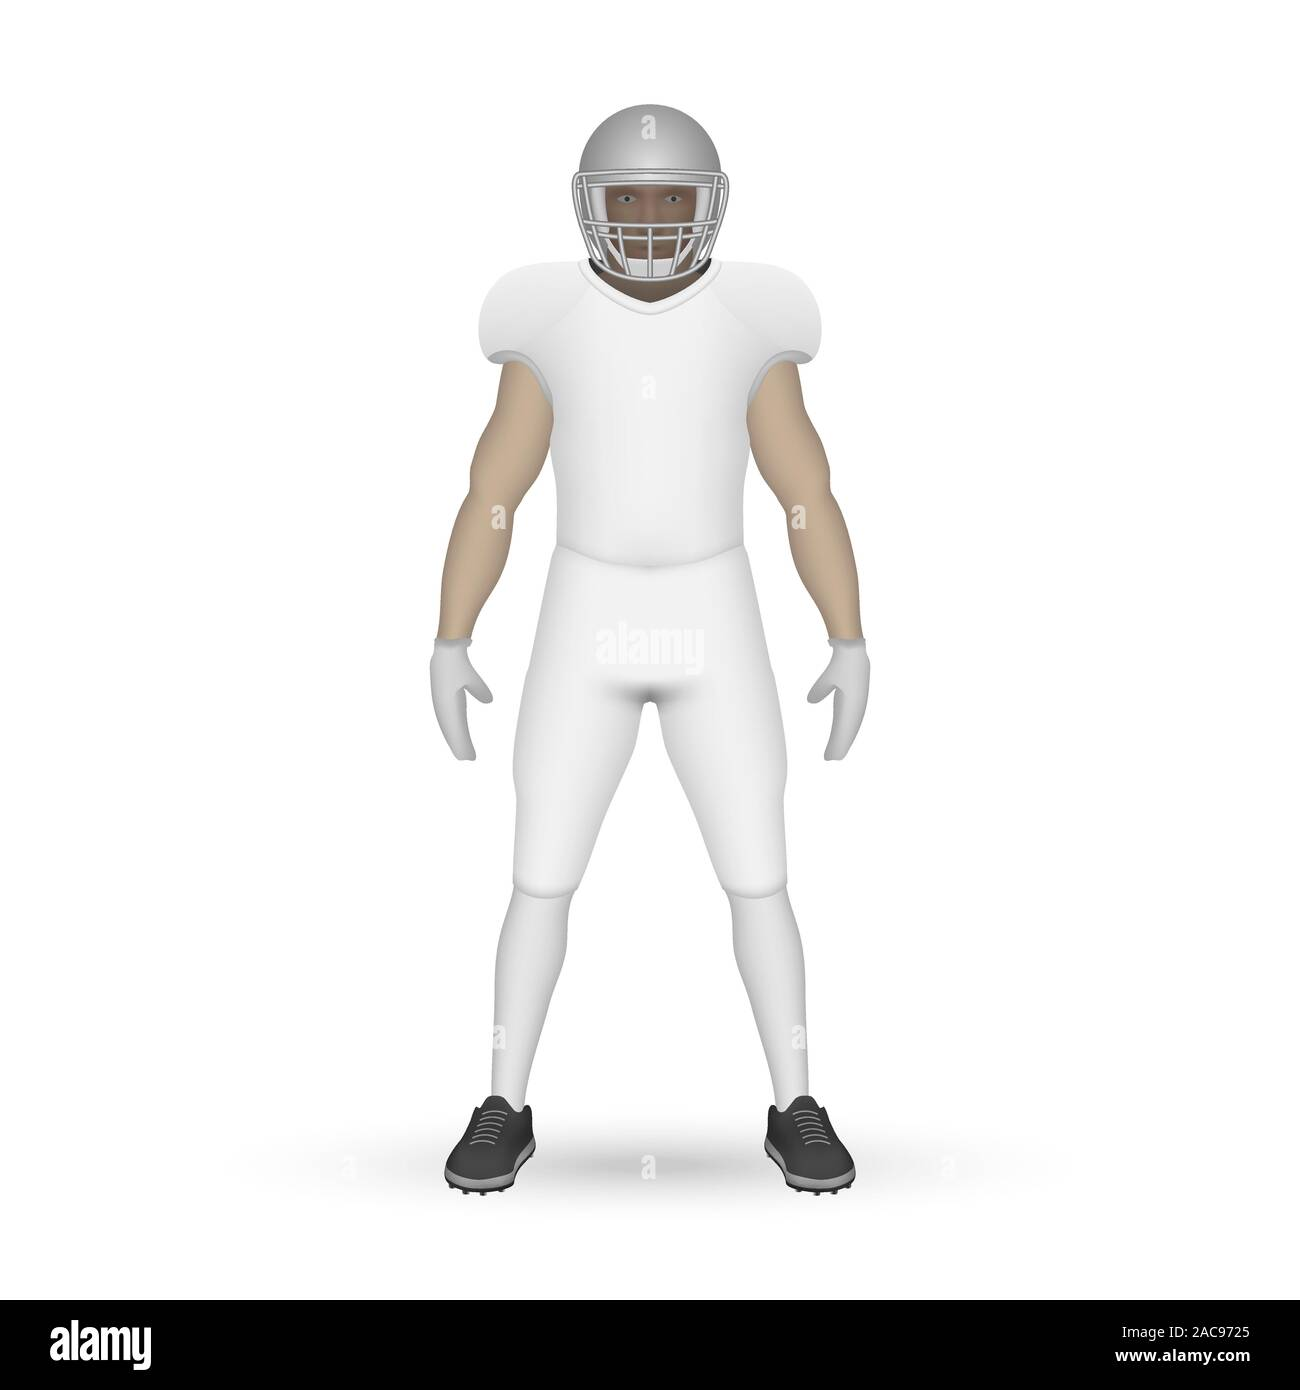 Download 3d Realistic American Football Player Kit Template Design Stock Vector Image Art Alamy Free Mockups